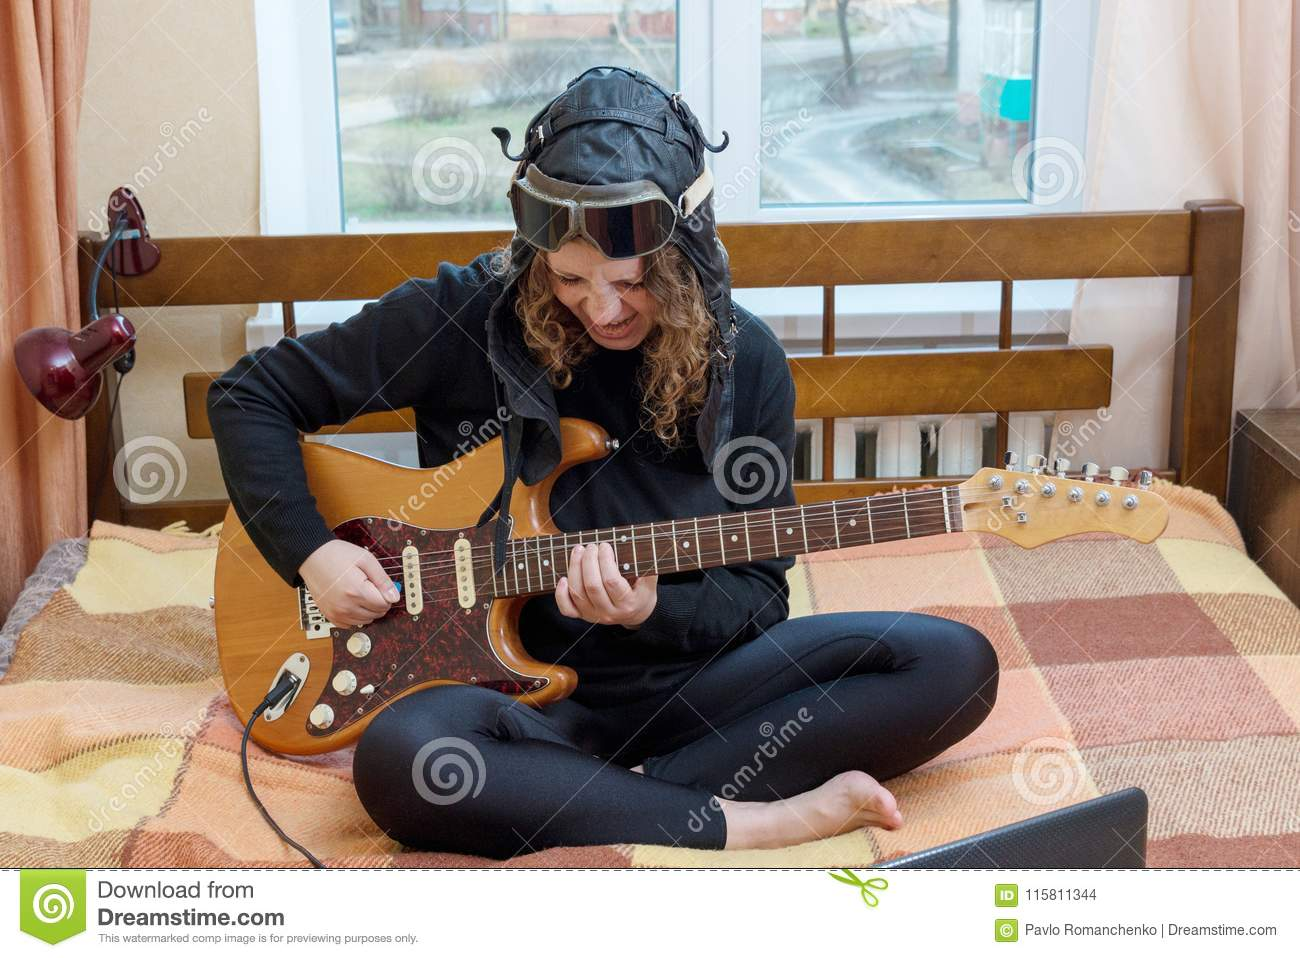 Girl Playing Electric Guitar Sitting On The Bed Stock Photo Image